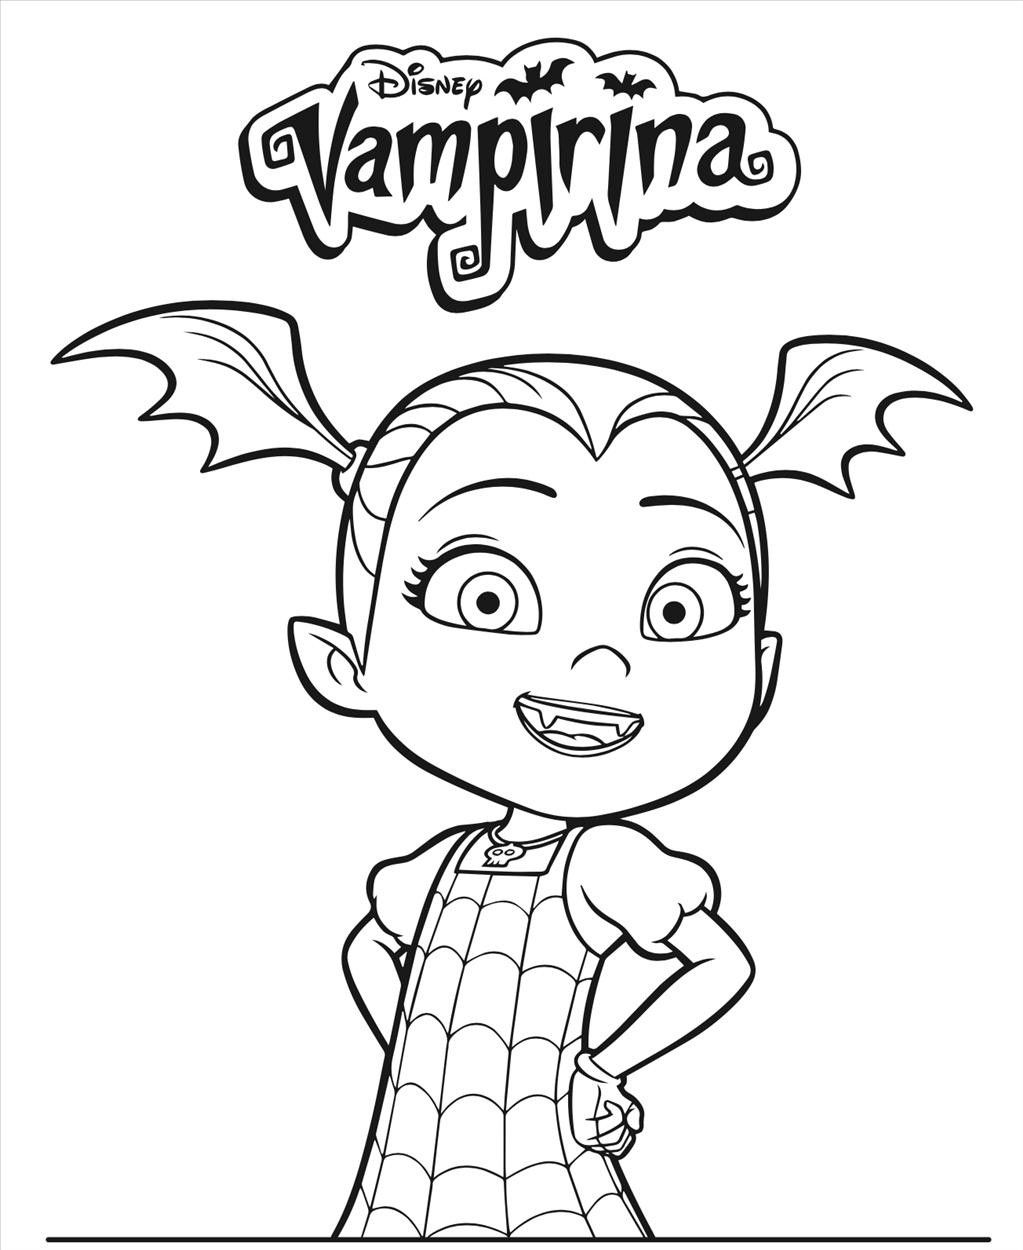 Disney Jr Coloring Pages Coloring Pages Allow Kids To Accompany Their Favorite Characters Disney Coloring Pages Halloween Coloring Pages Halloween Coloring